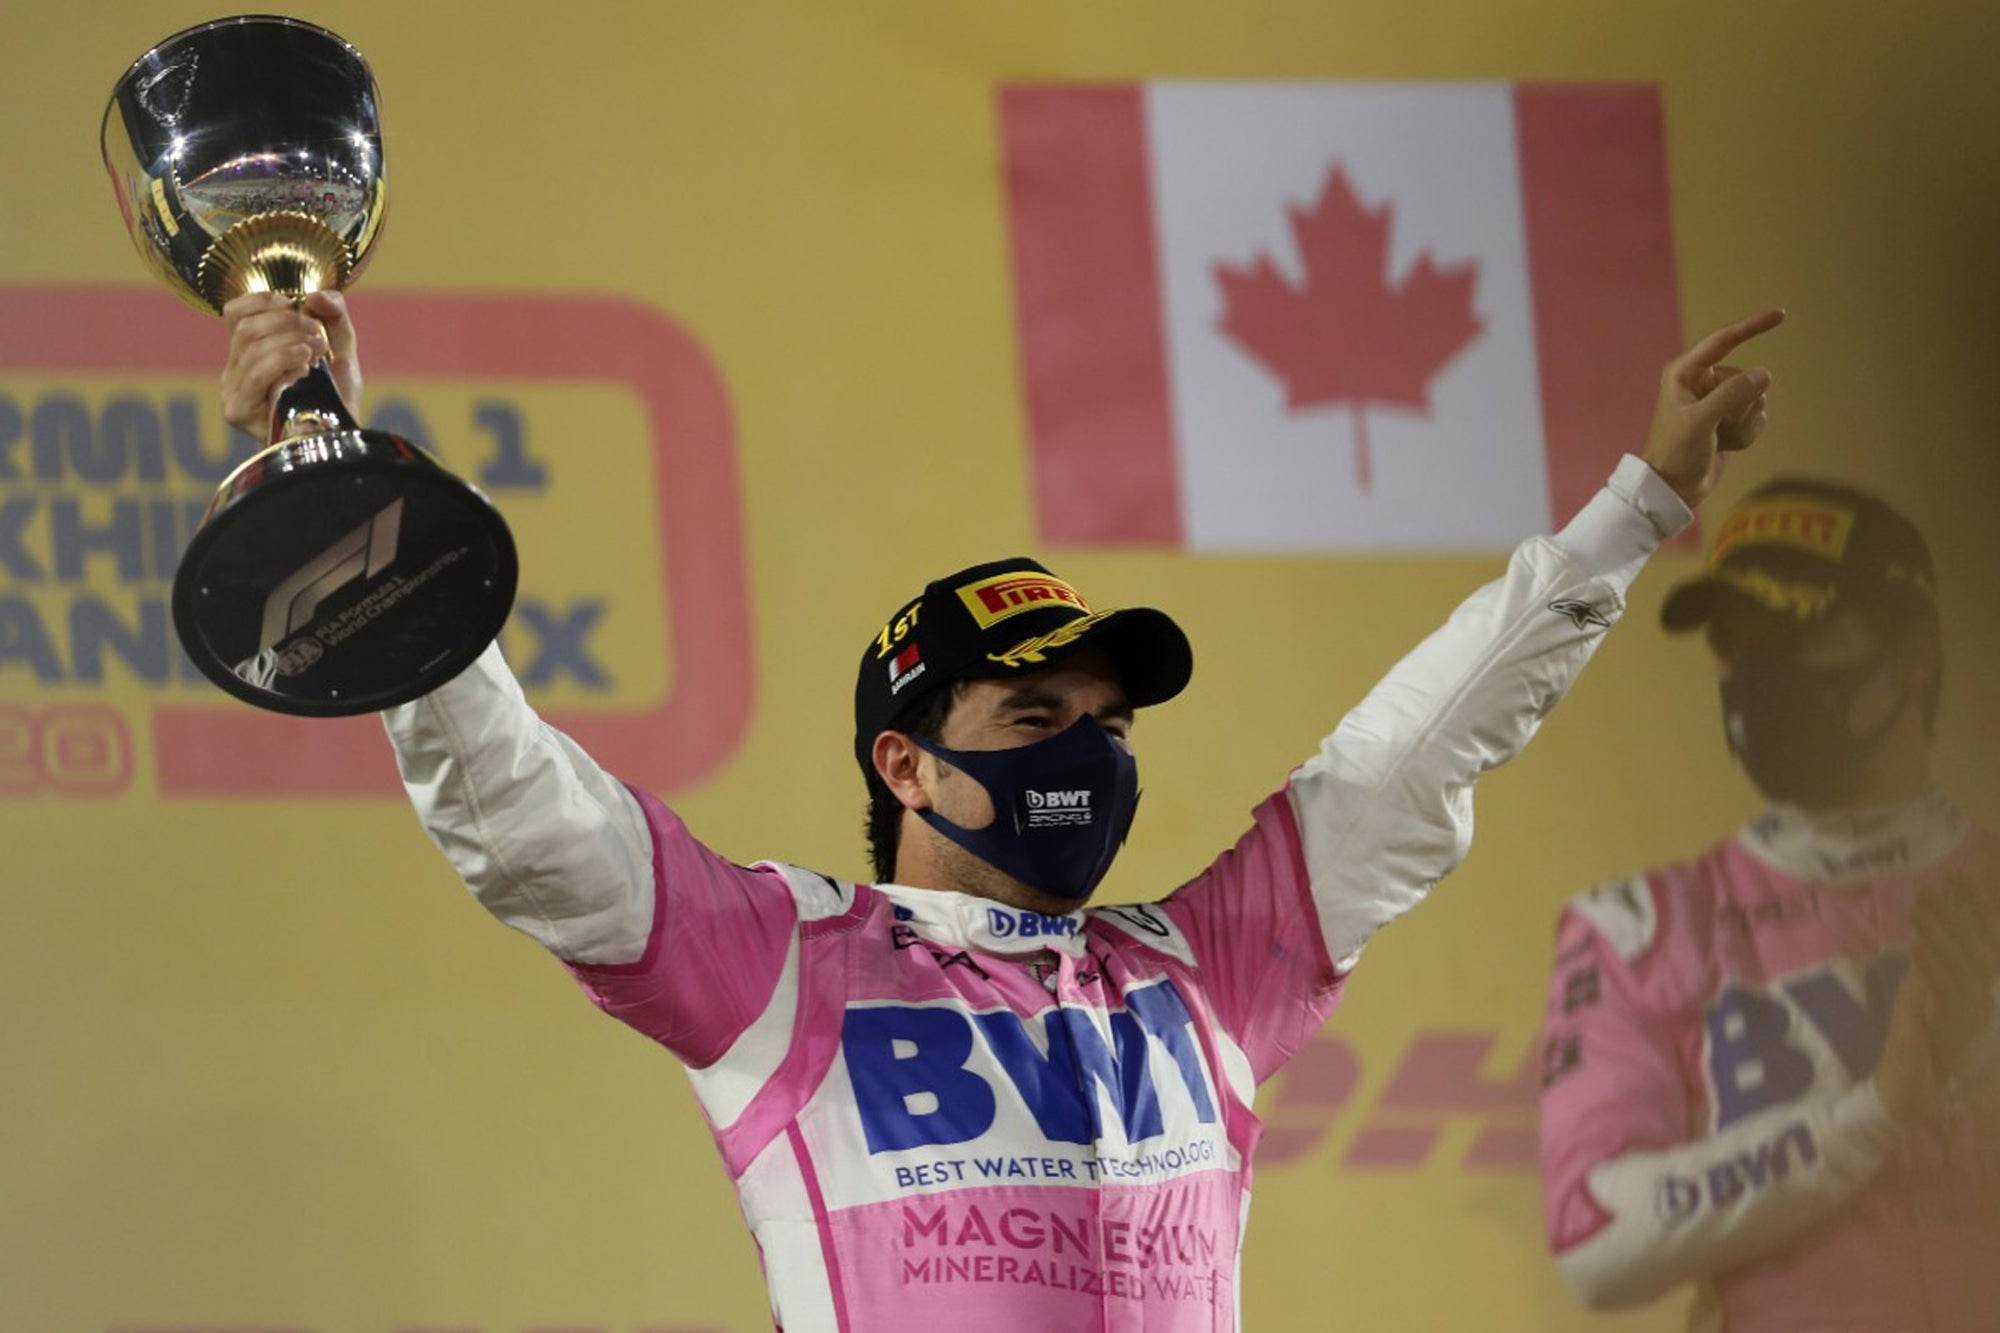 This is how Sergio 'Checo' Pérez won F1 after 10 years of trying